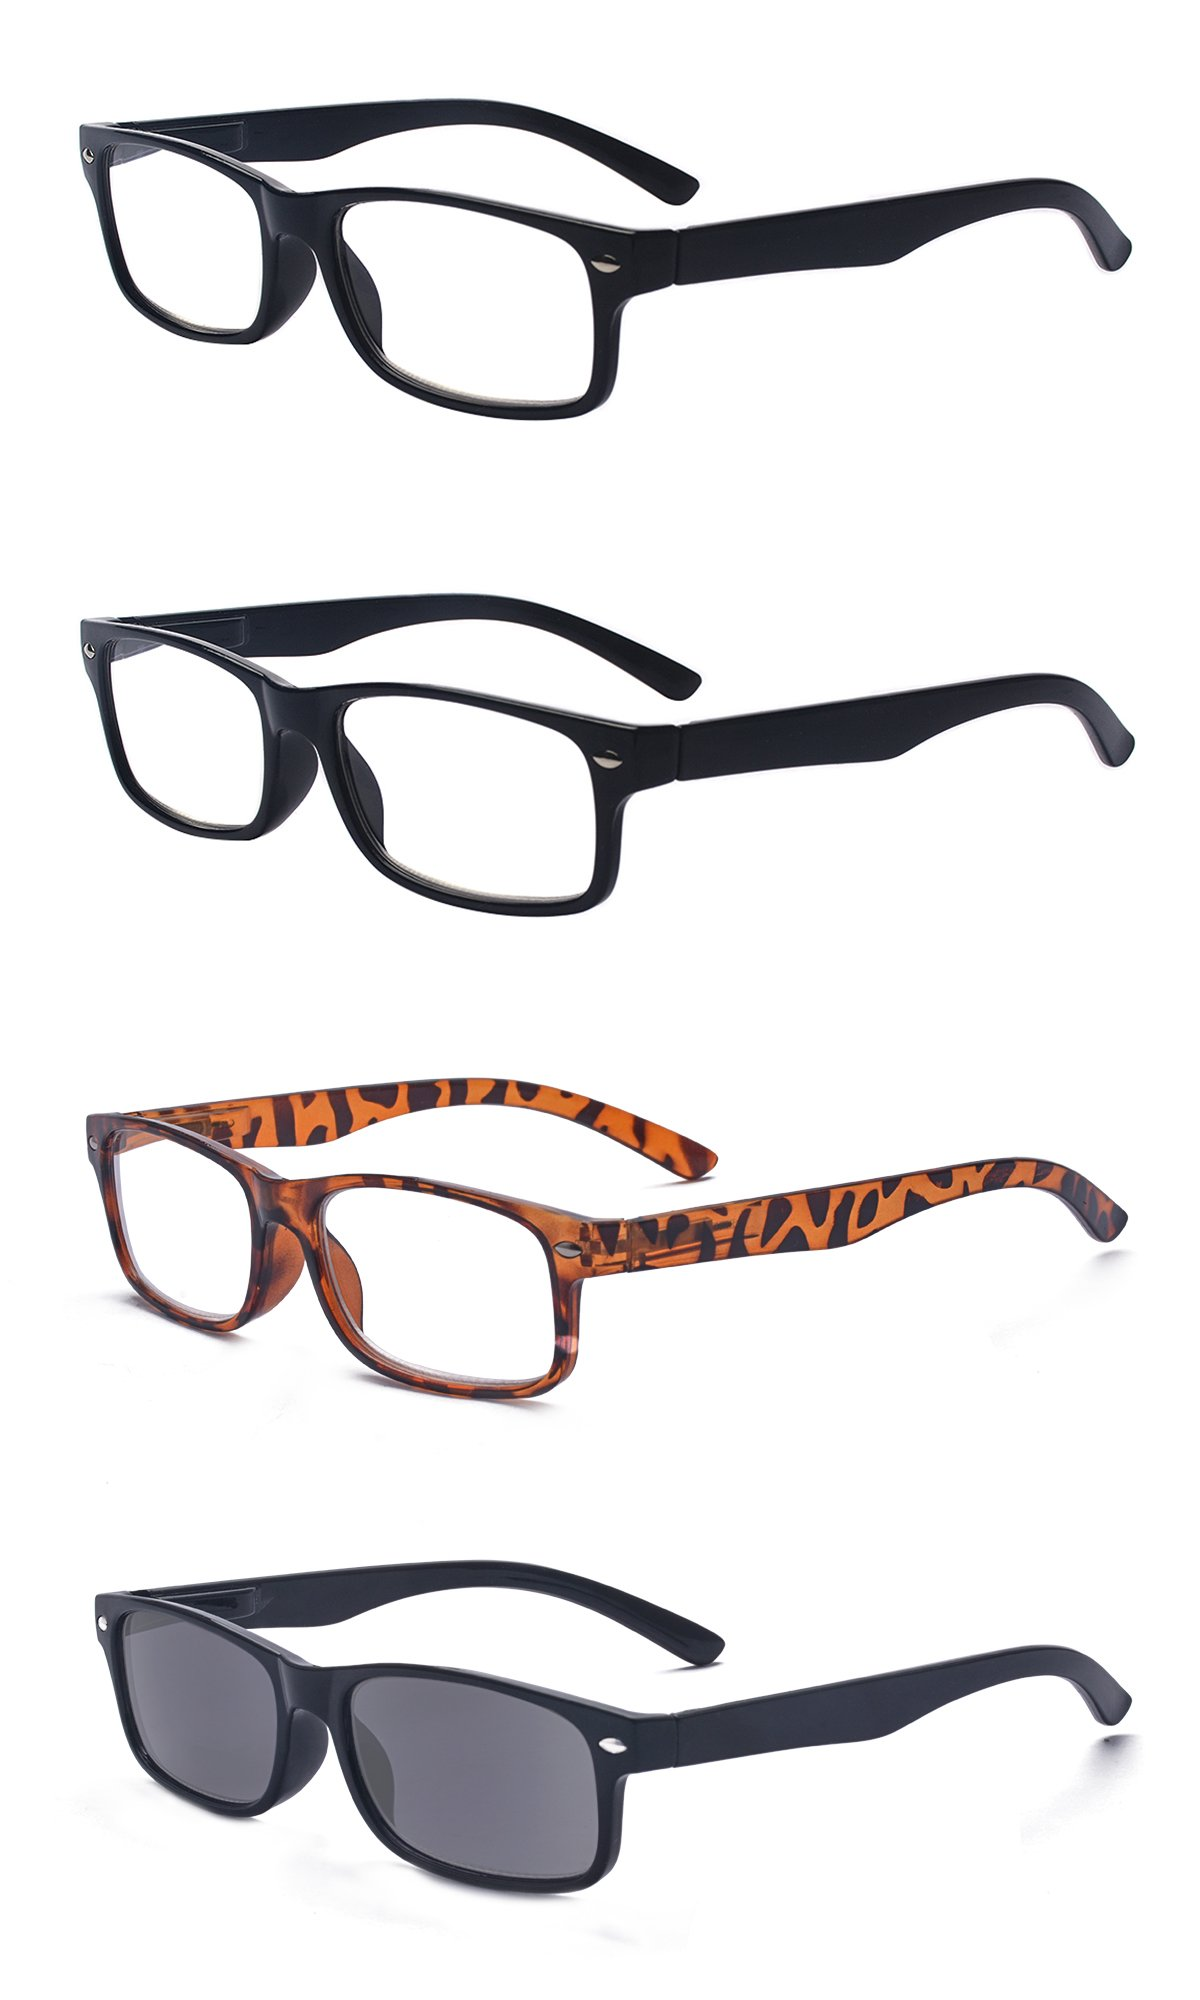 80a50503f1 Galleon - Outray Men Or Women 4 Pack Mixed Color Spring Hinges Frame  Rectangular Reading Glasses 4.00